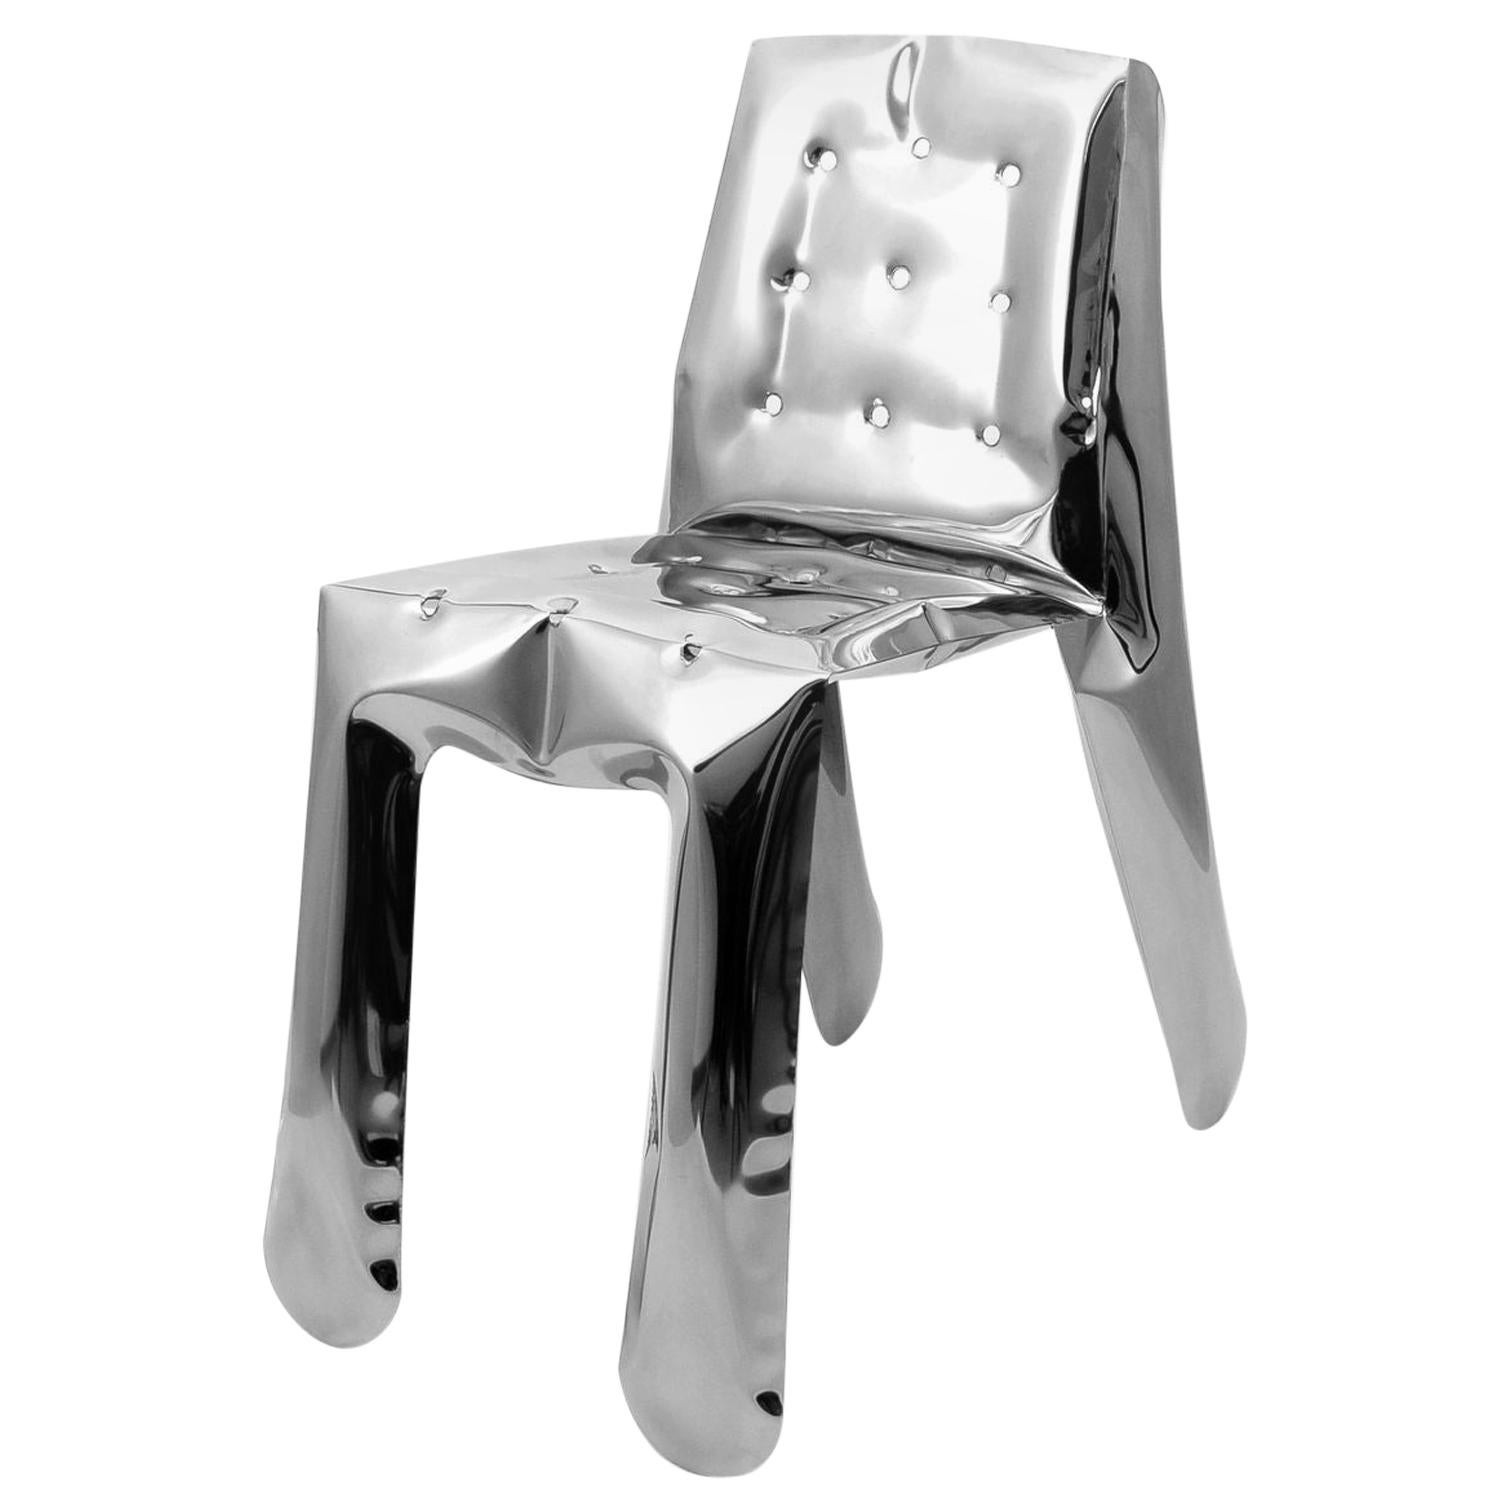 Chippensteel 1.0 Polished Raw Lacquered Color Carbon Steel Seating by Zieta